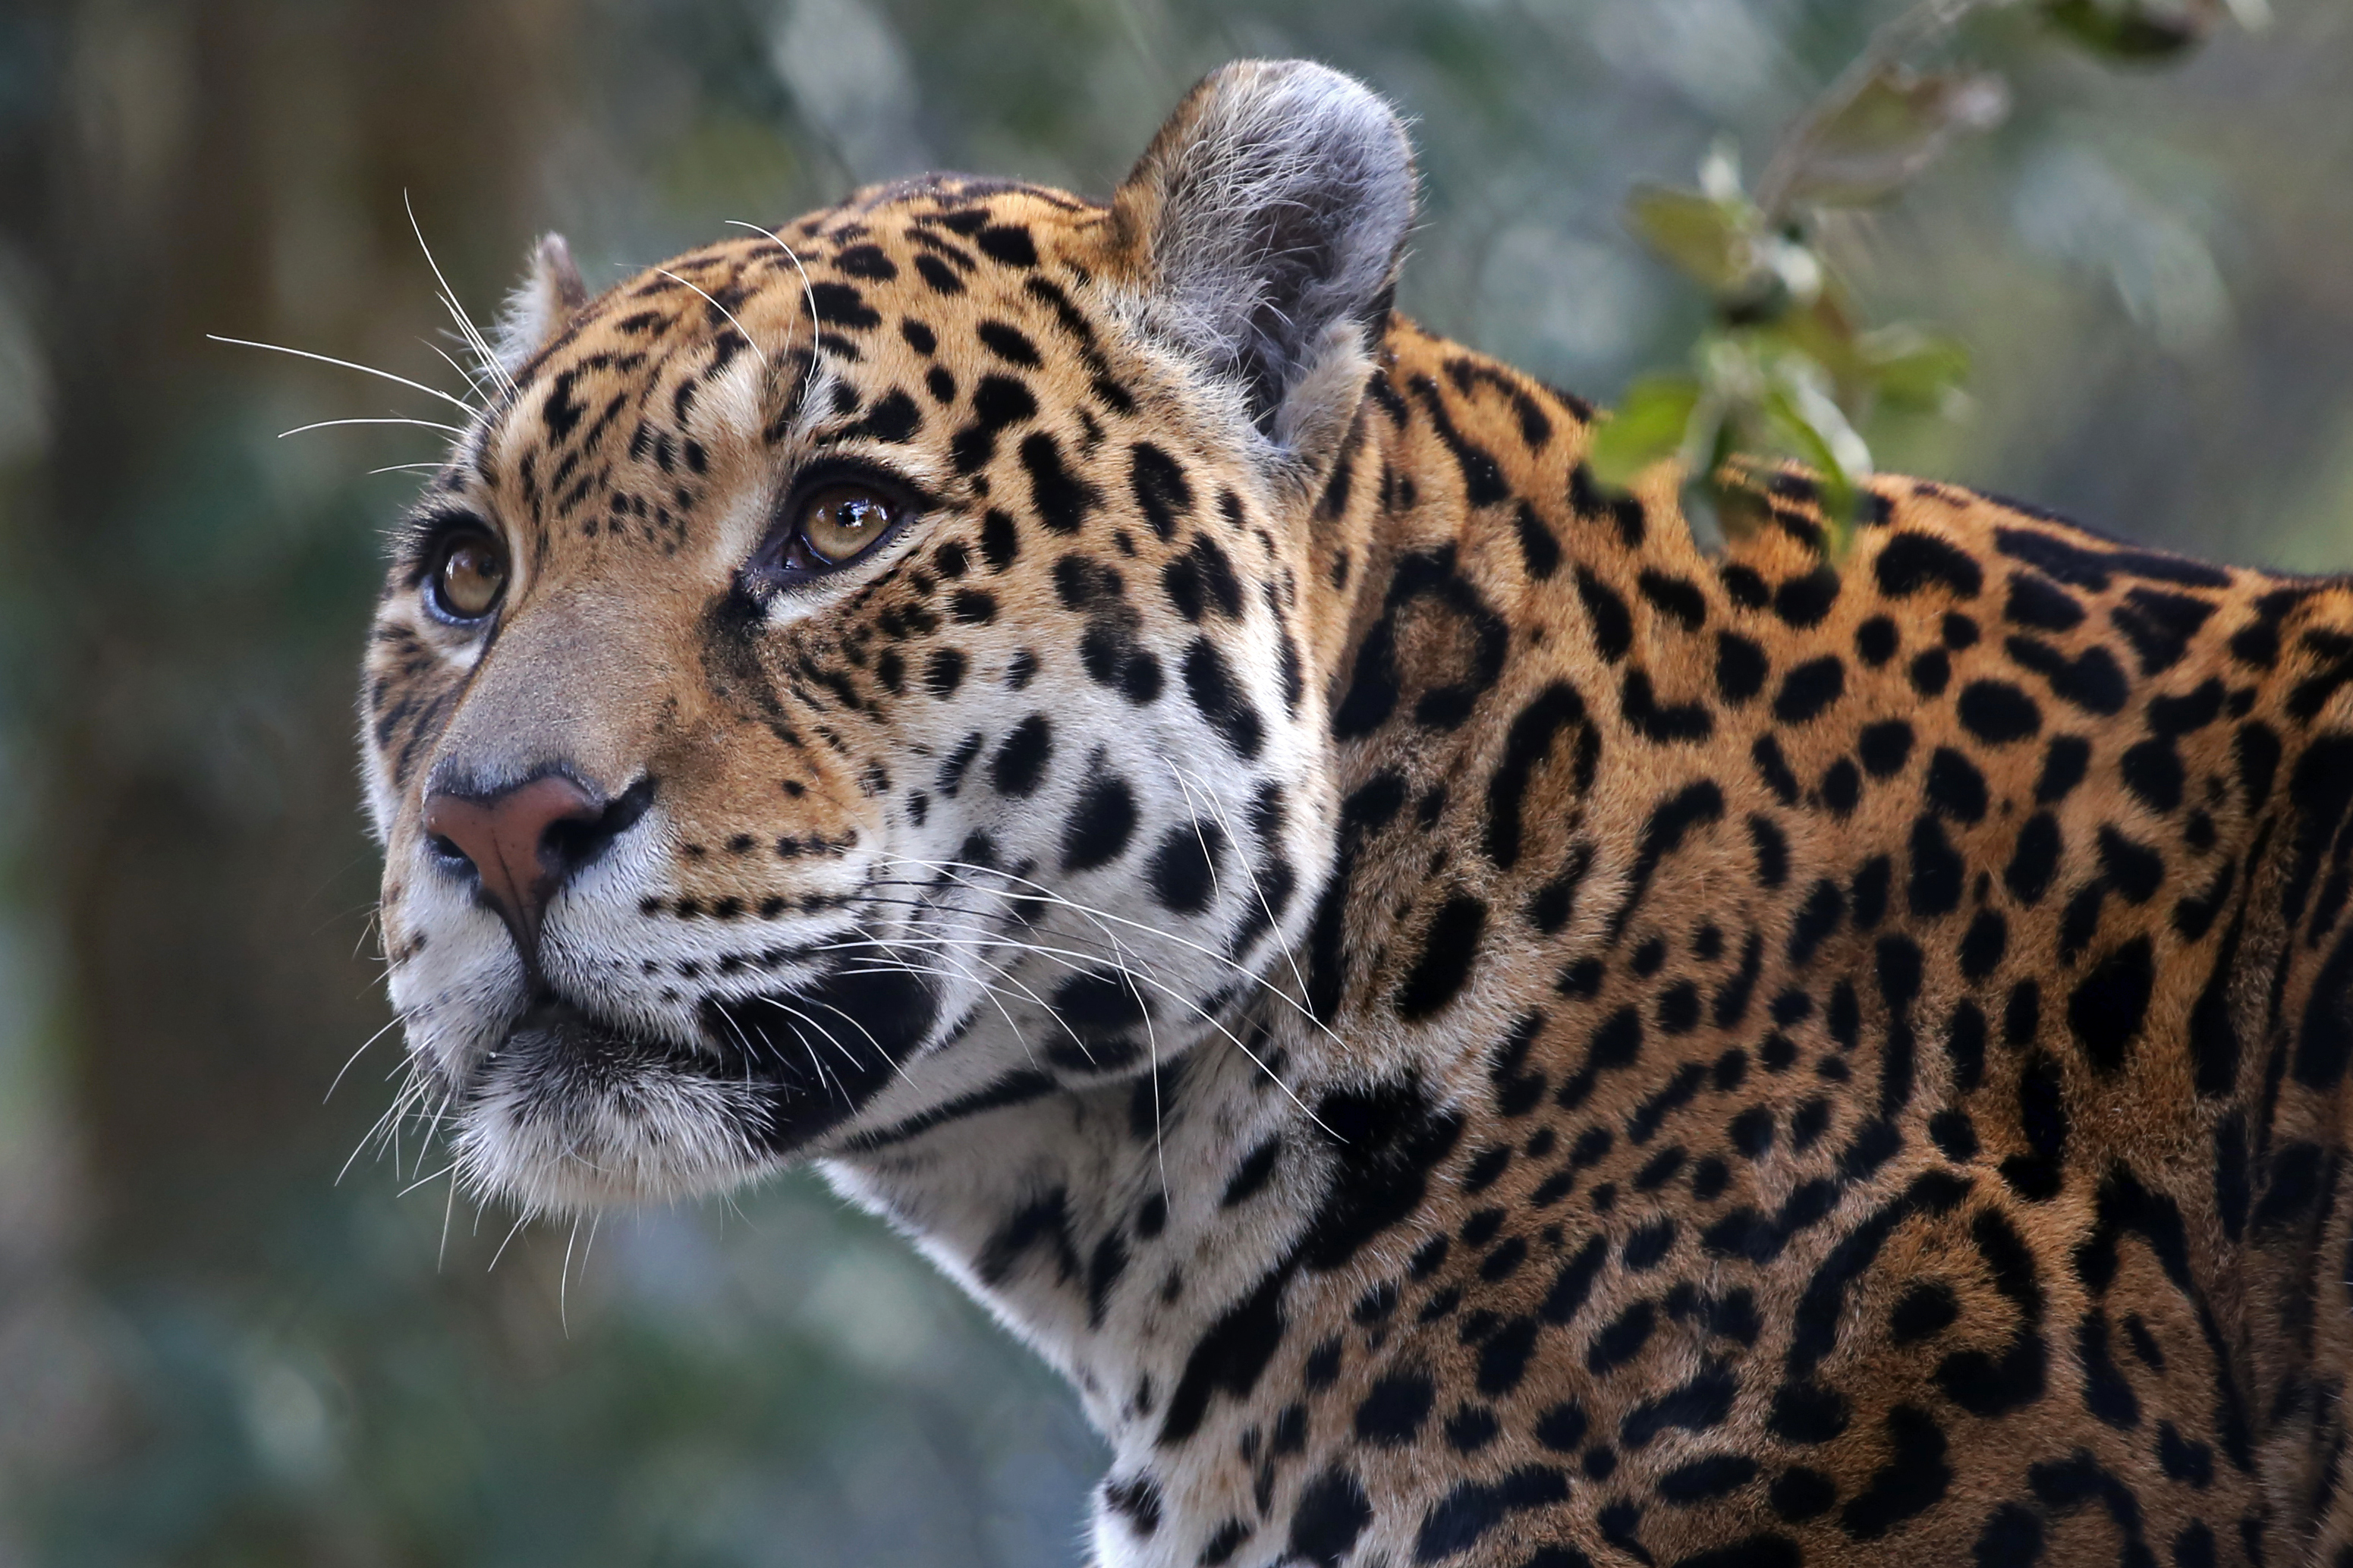 a jaguar looking ahead in a forest